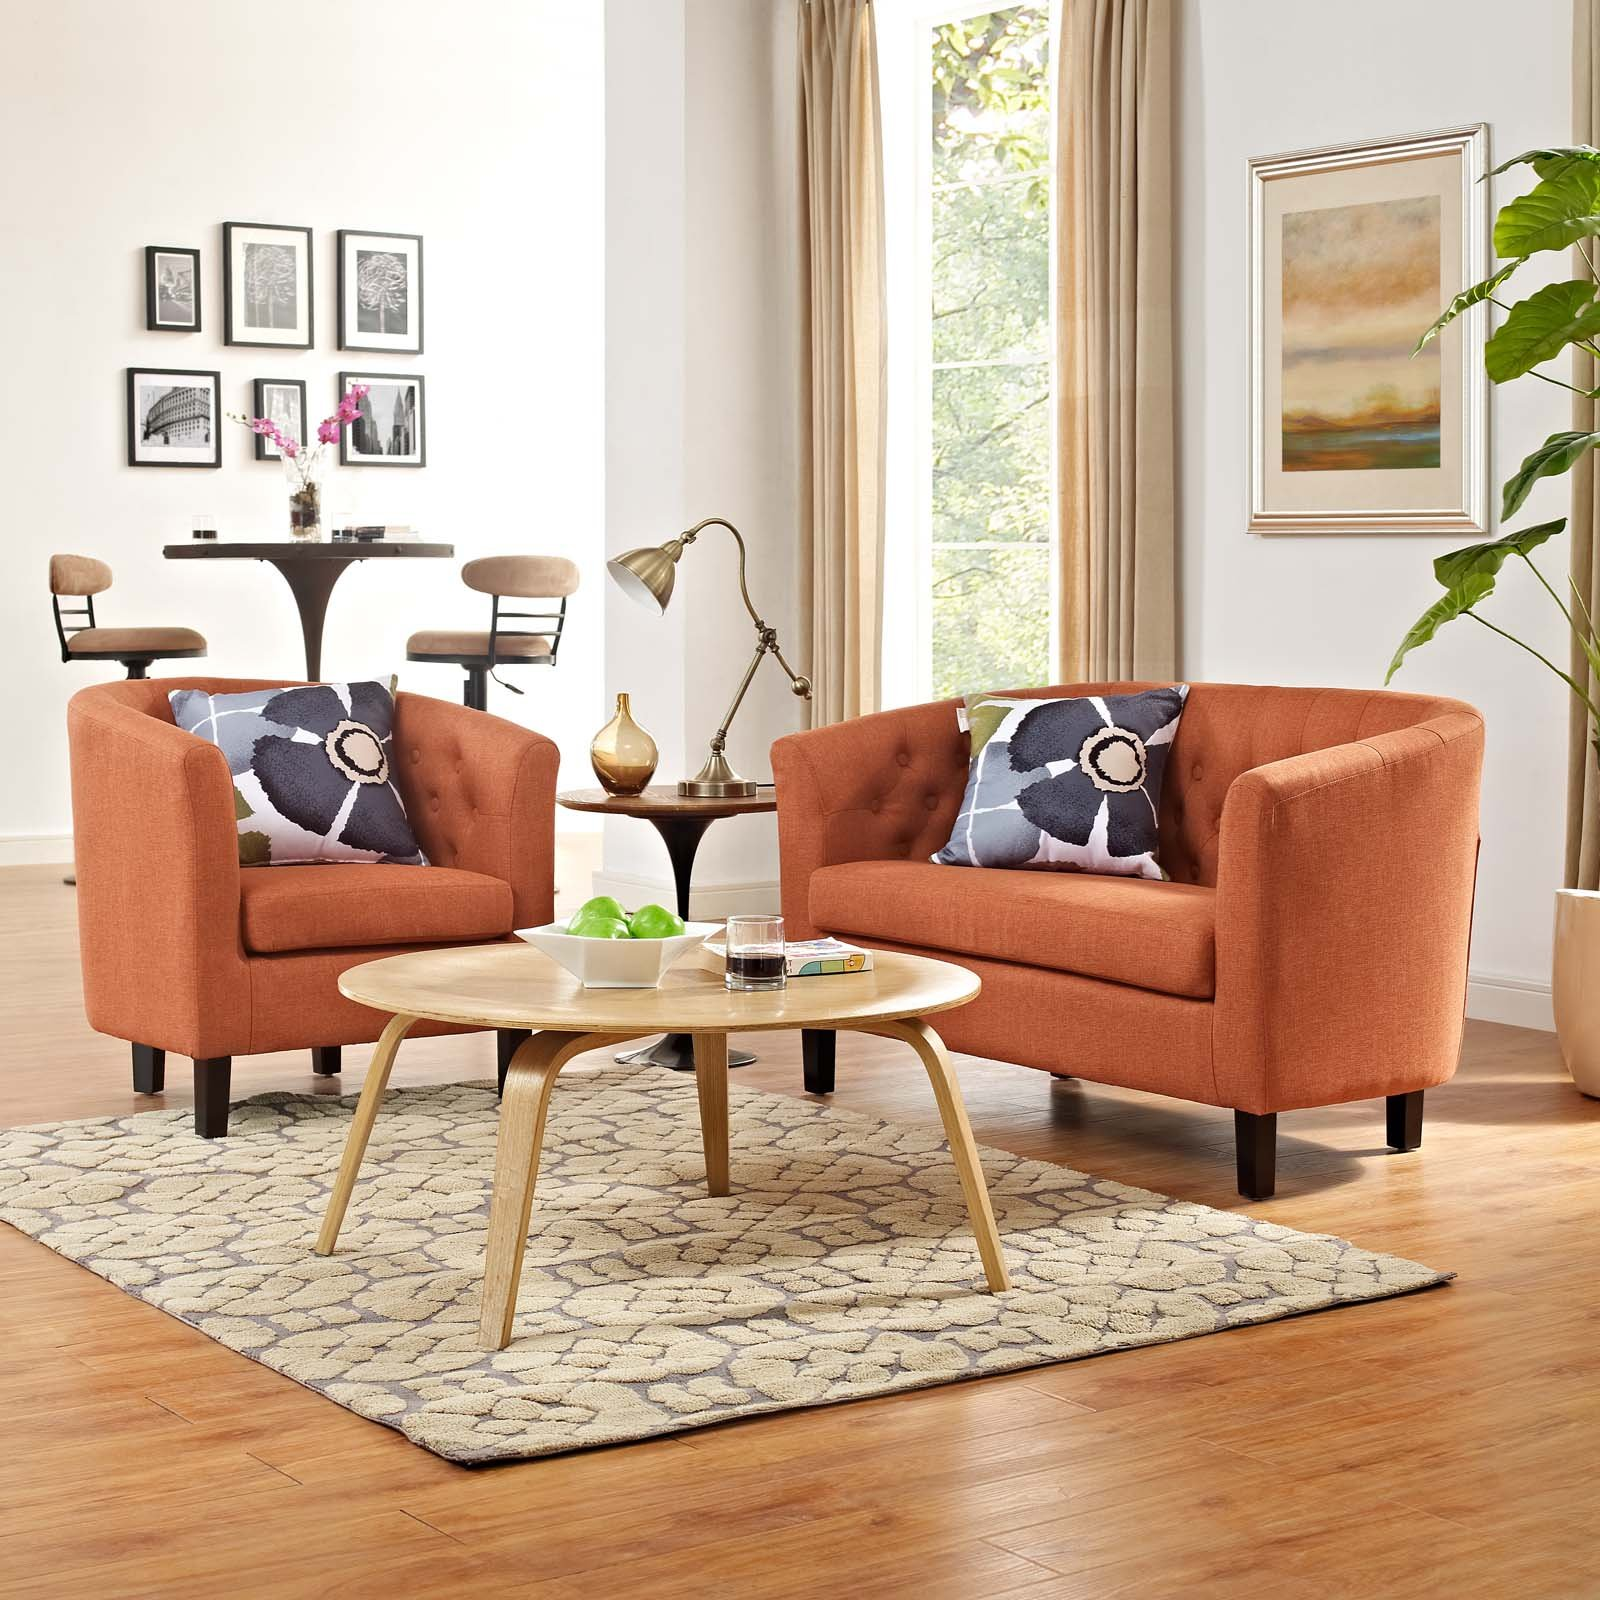 Modway Prospect Loveseat And Armchair Set, Orange by Modway